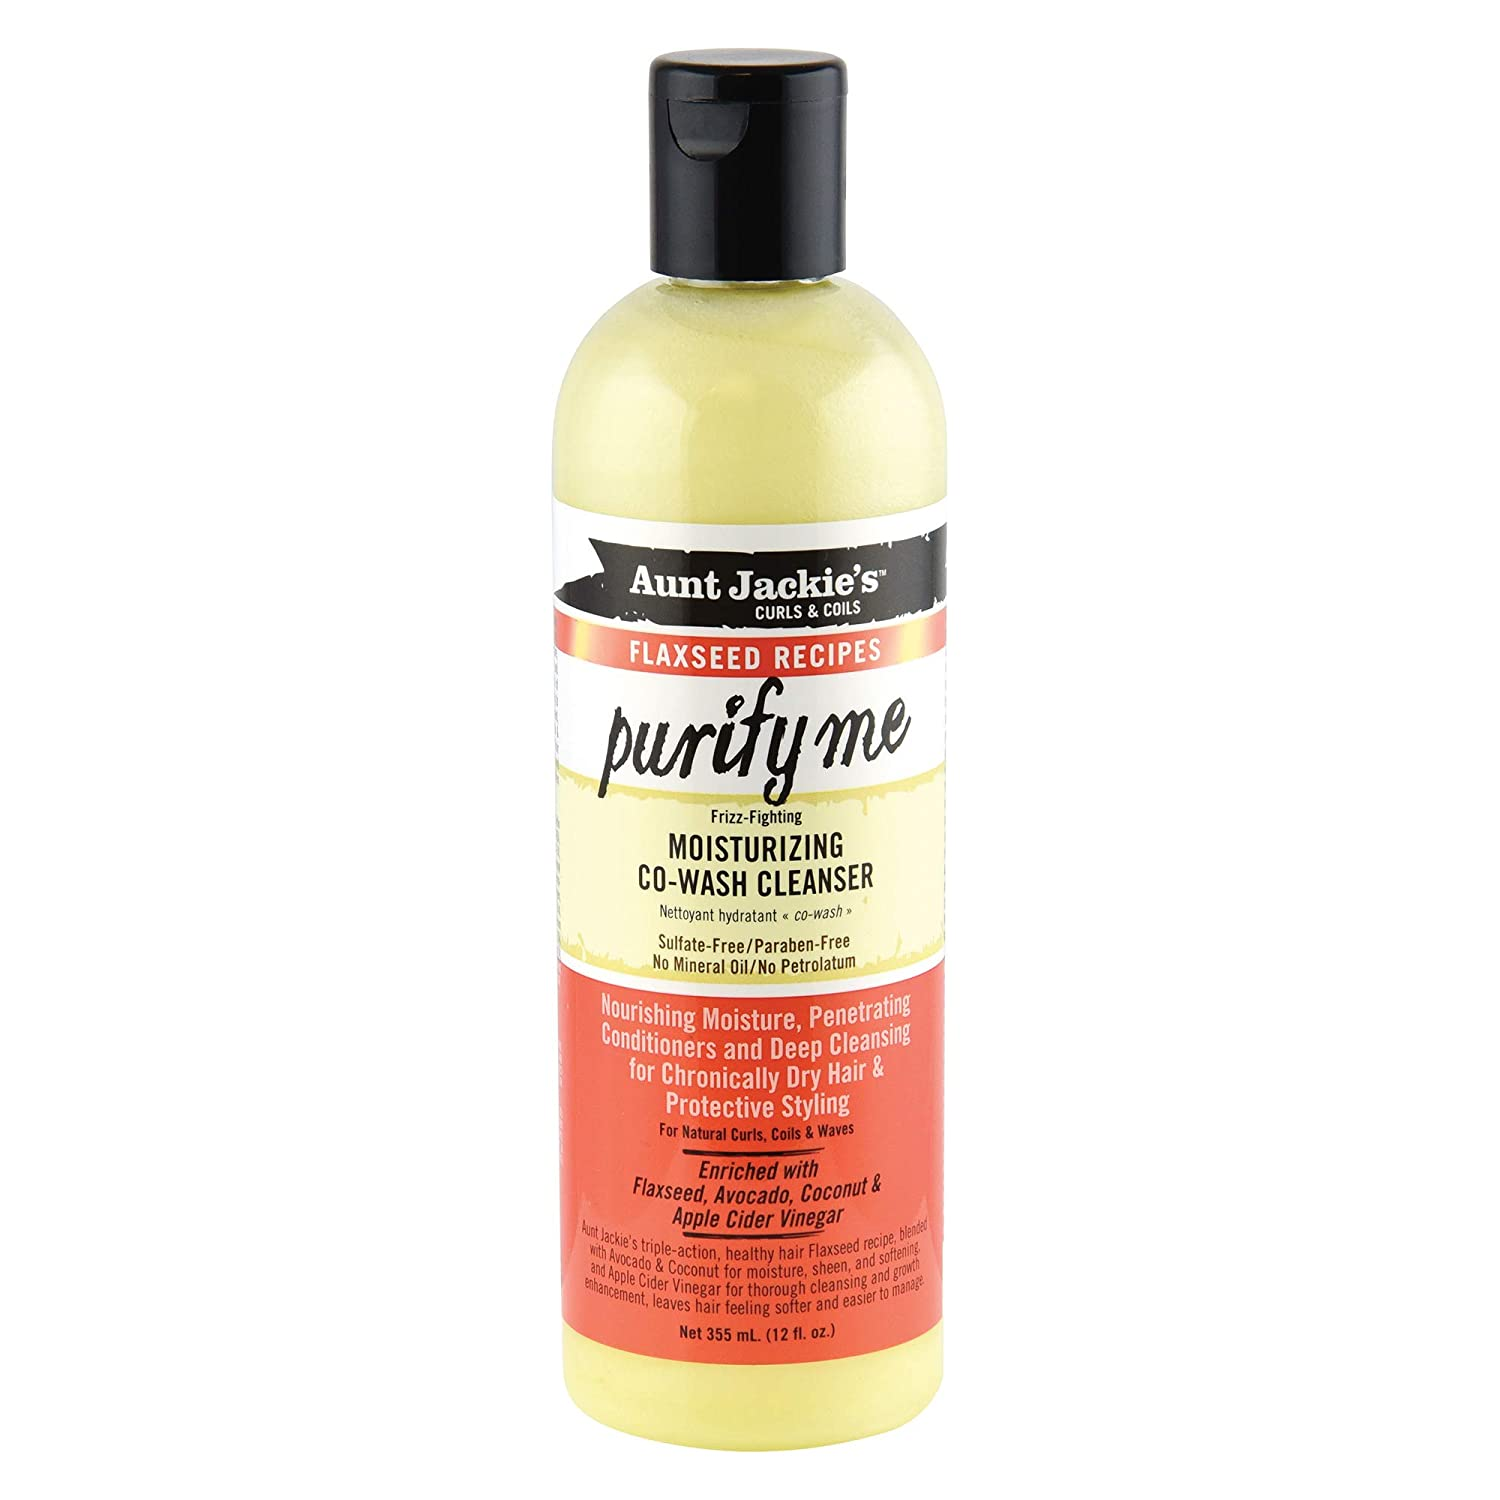 Aunt Jackie's curls & coils flaxseed recipes PURIFY ME moisturizing co-Wash cleanser (12 oz.)